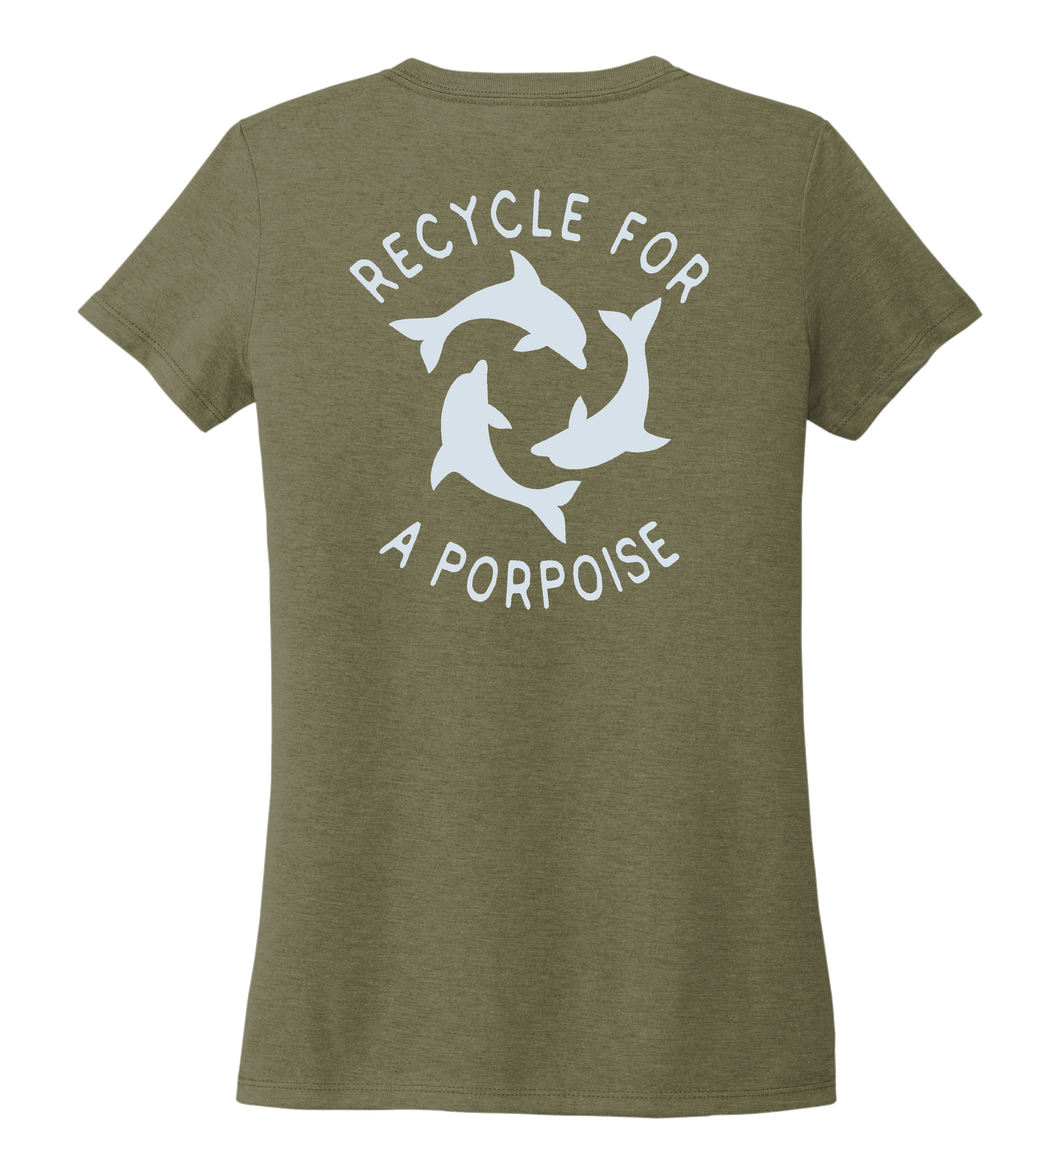 StepChange, Porpoise, Women's V-neck T-shirt in Earthy Green